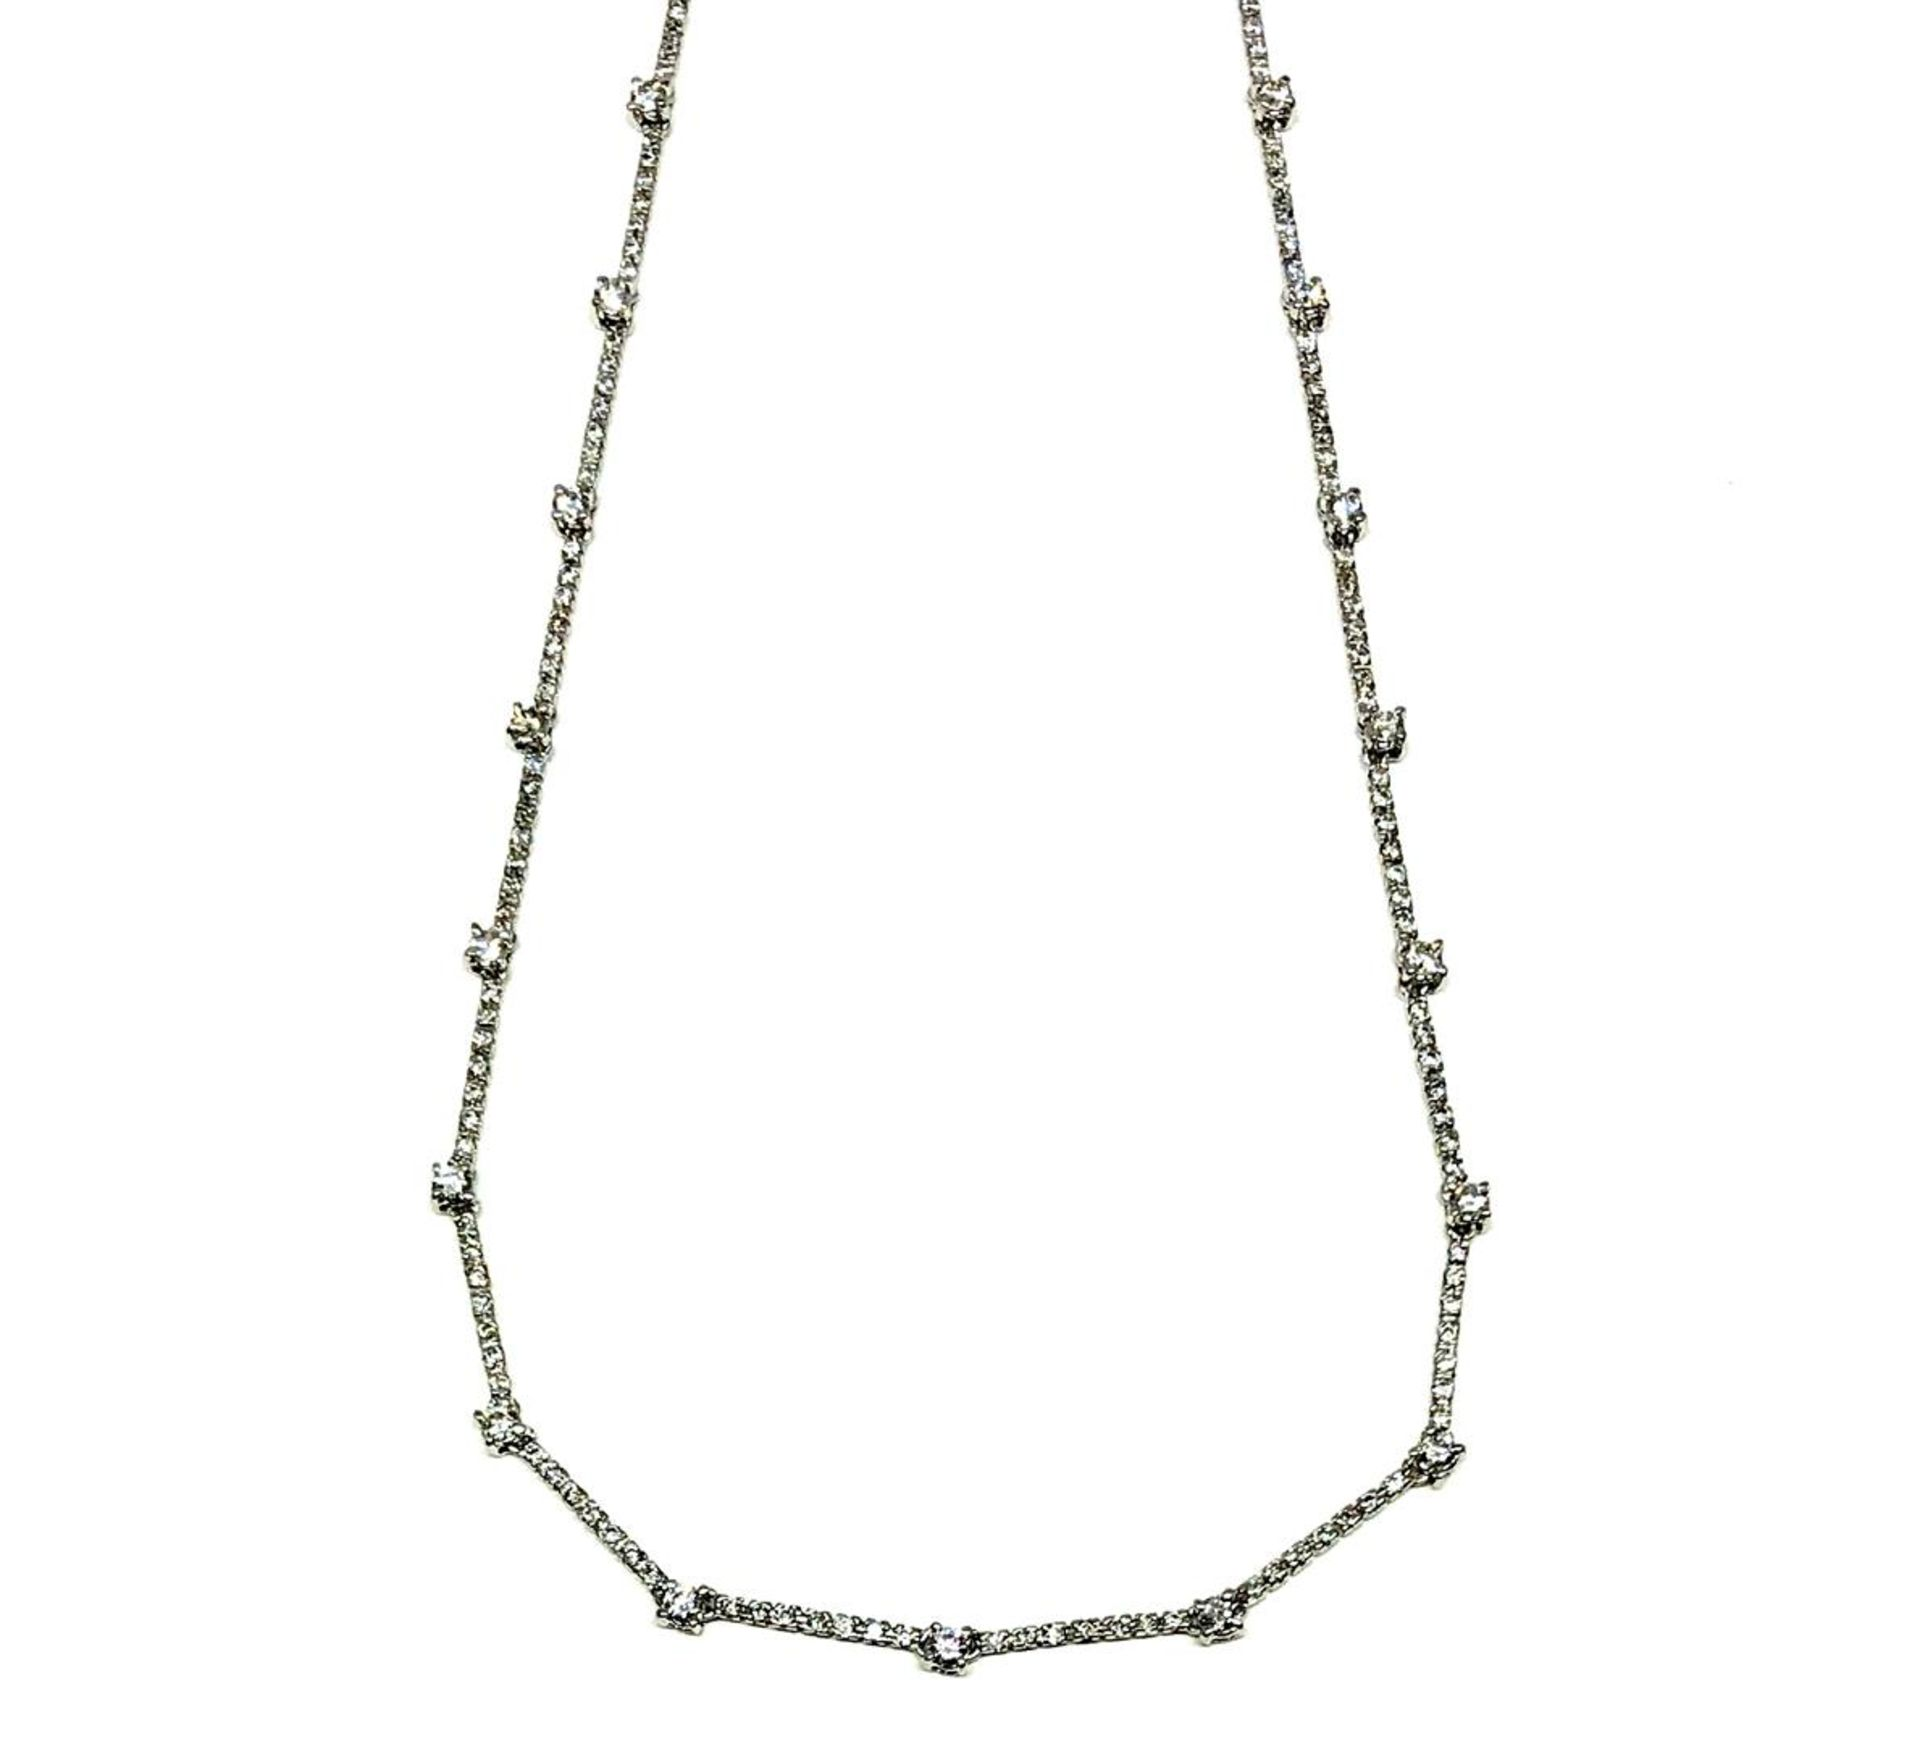 2.20 ctw Diamond Necklace - 18KT White Gold - Image 2 of 4